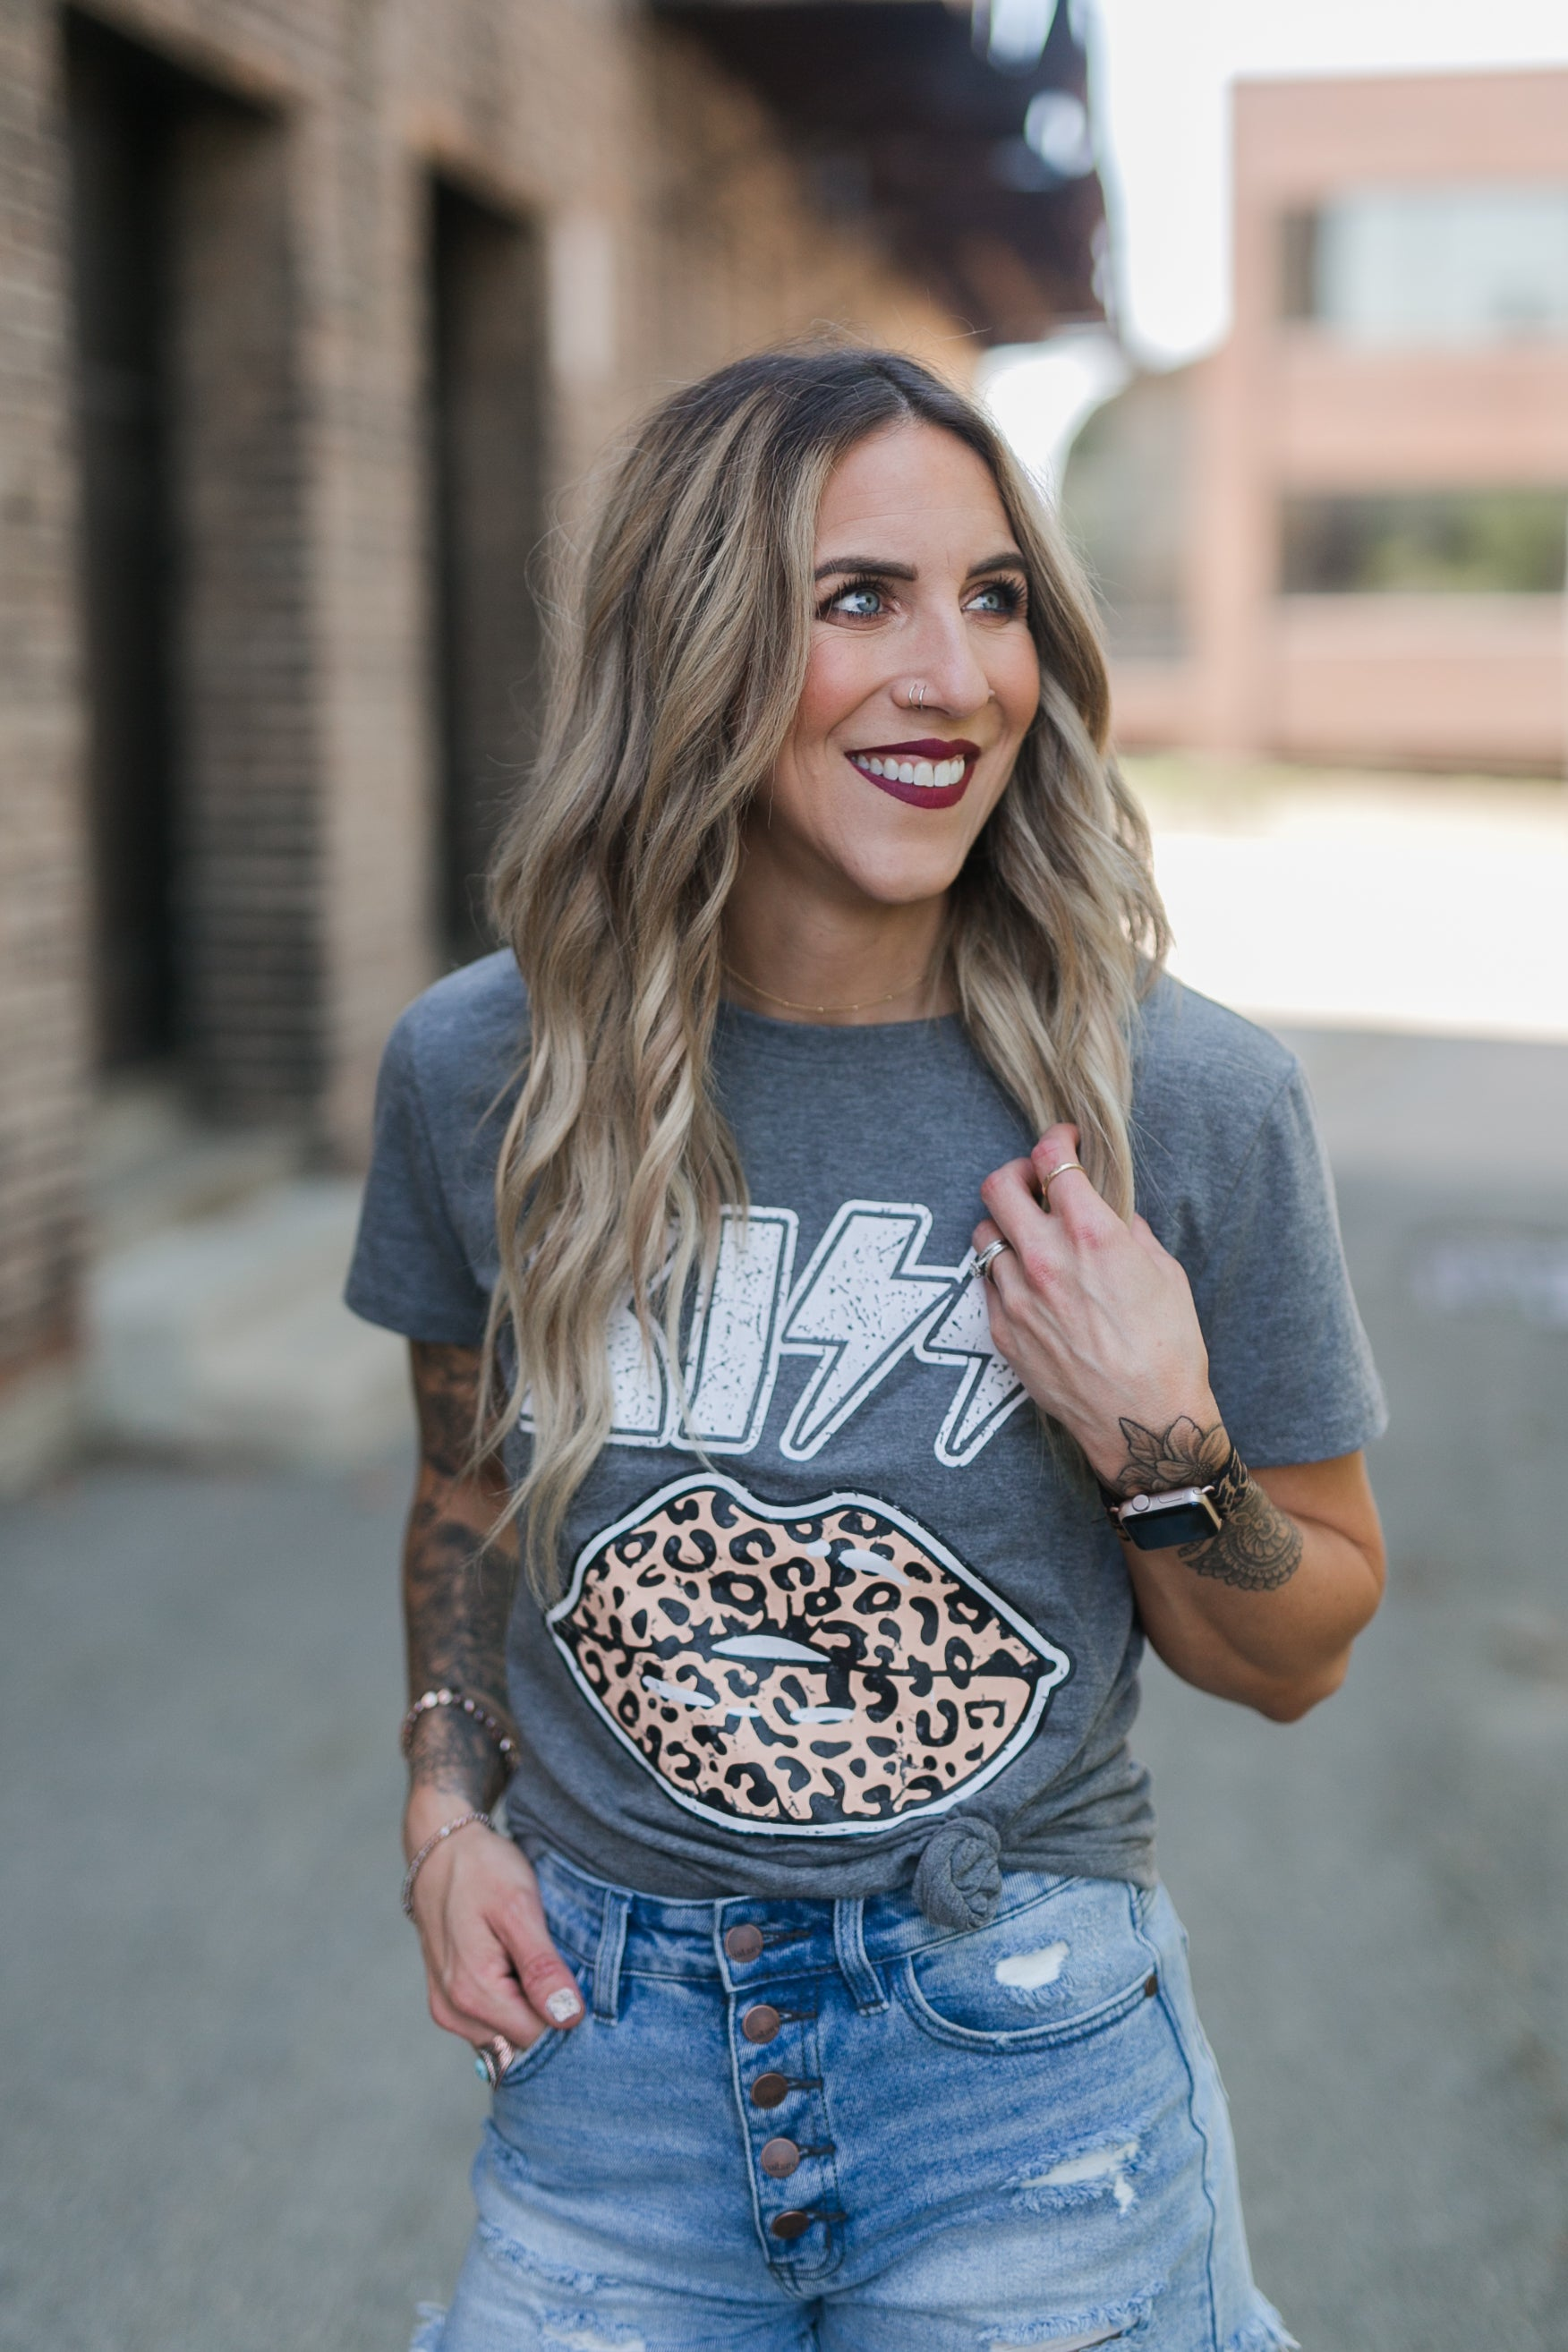 KISS LEOPARD GRAPHIC TEE - GREY